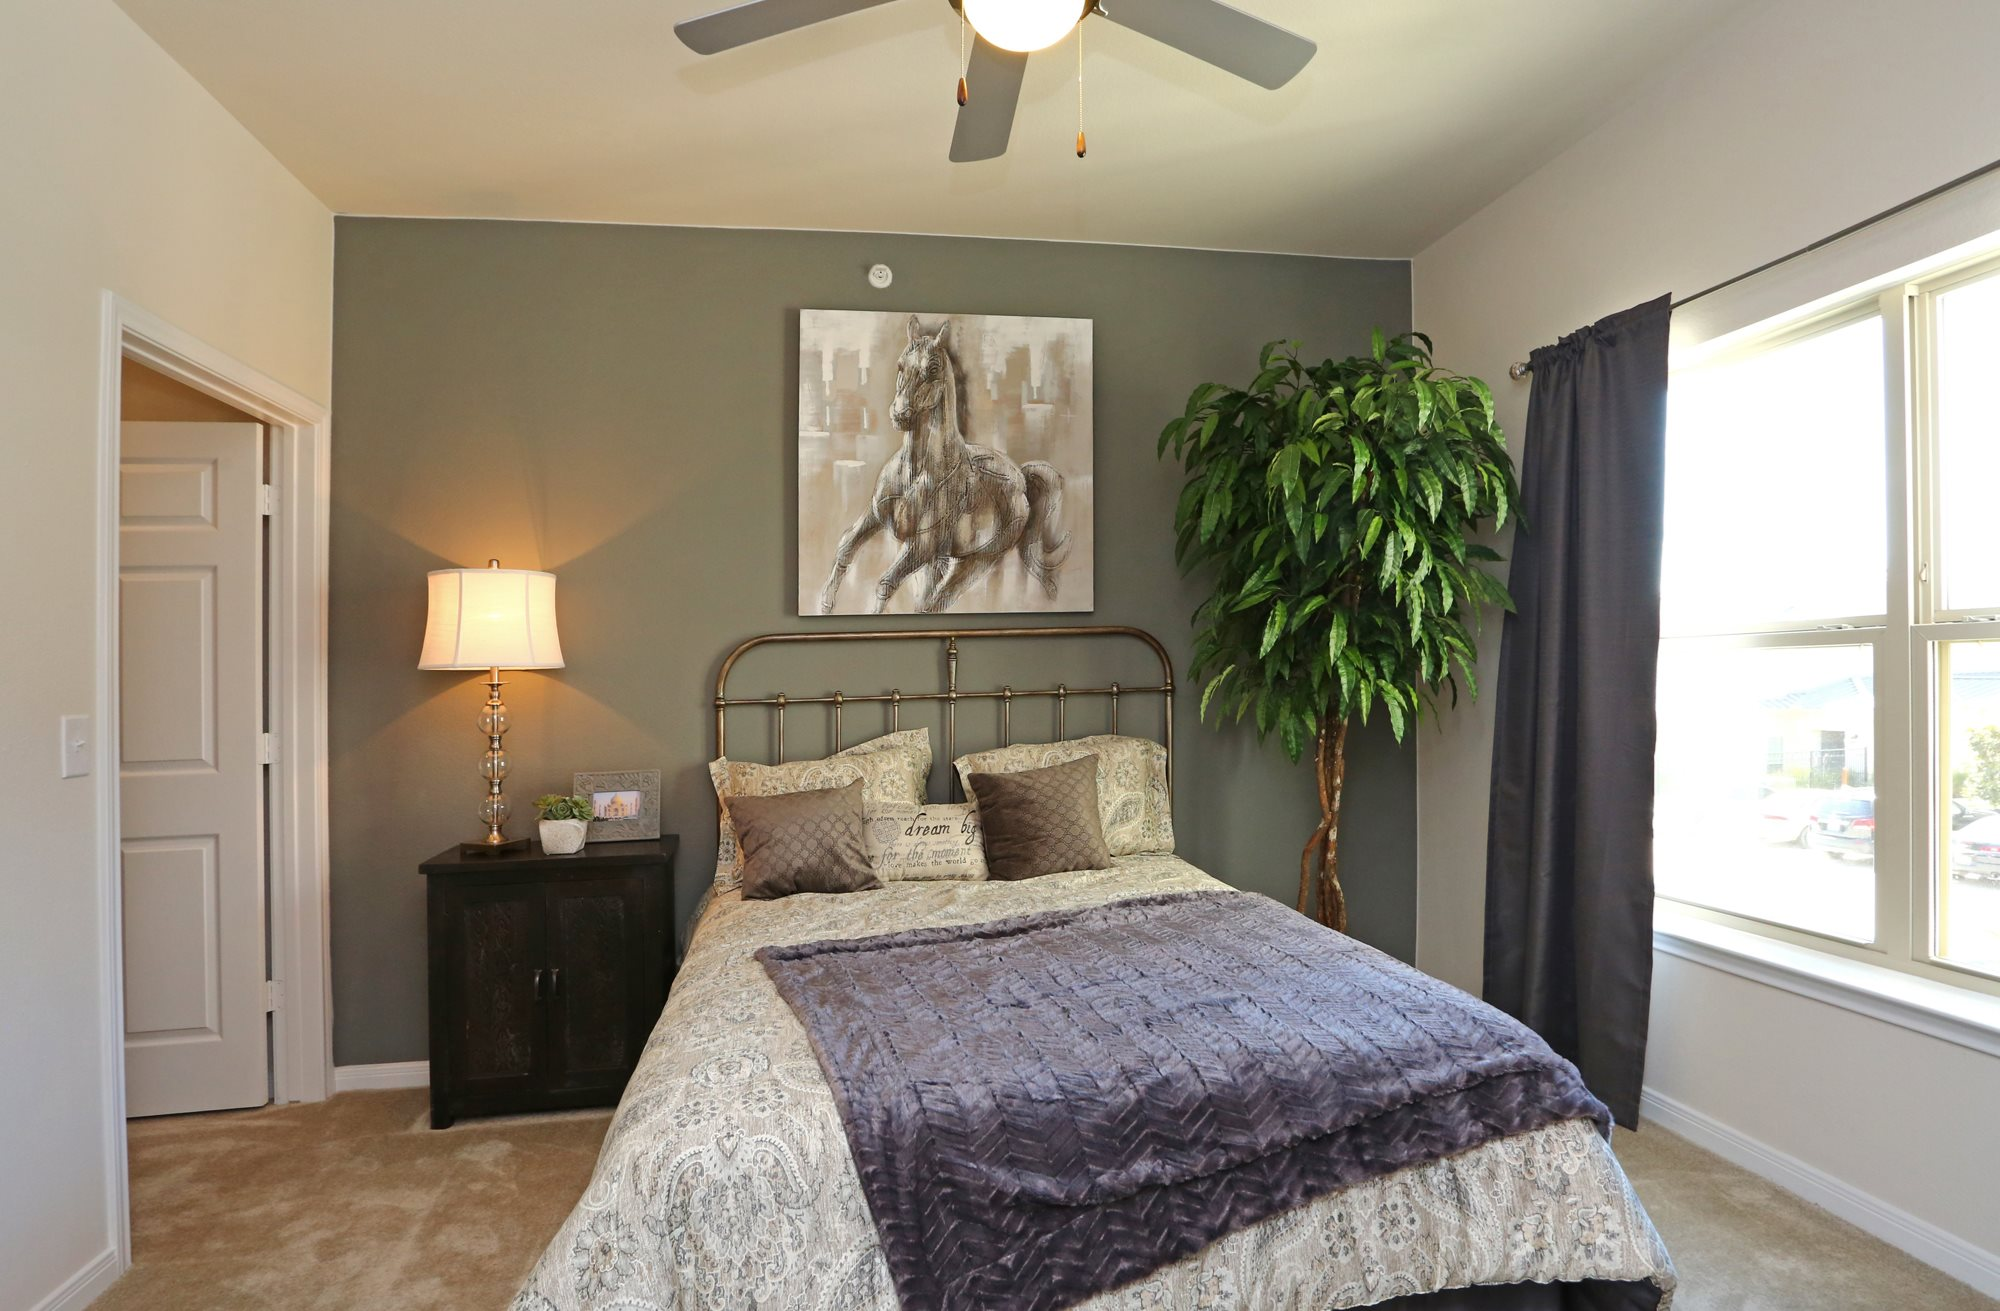 Longhorn crossing apartments in fort worth tx for Apartments near texas motor speedway